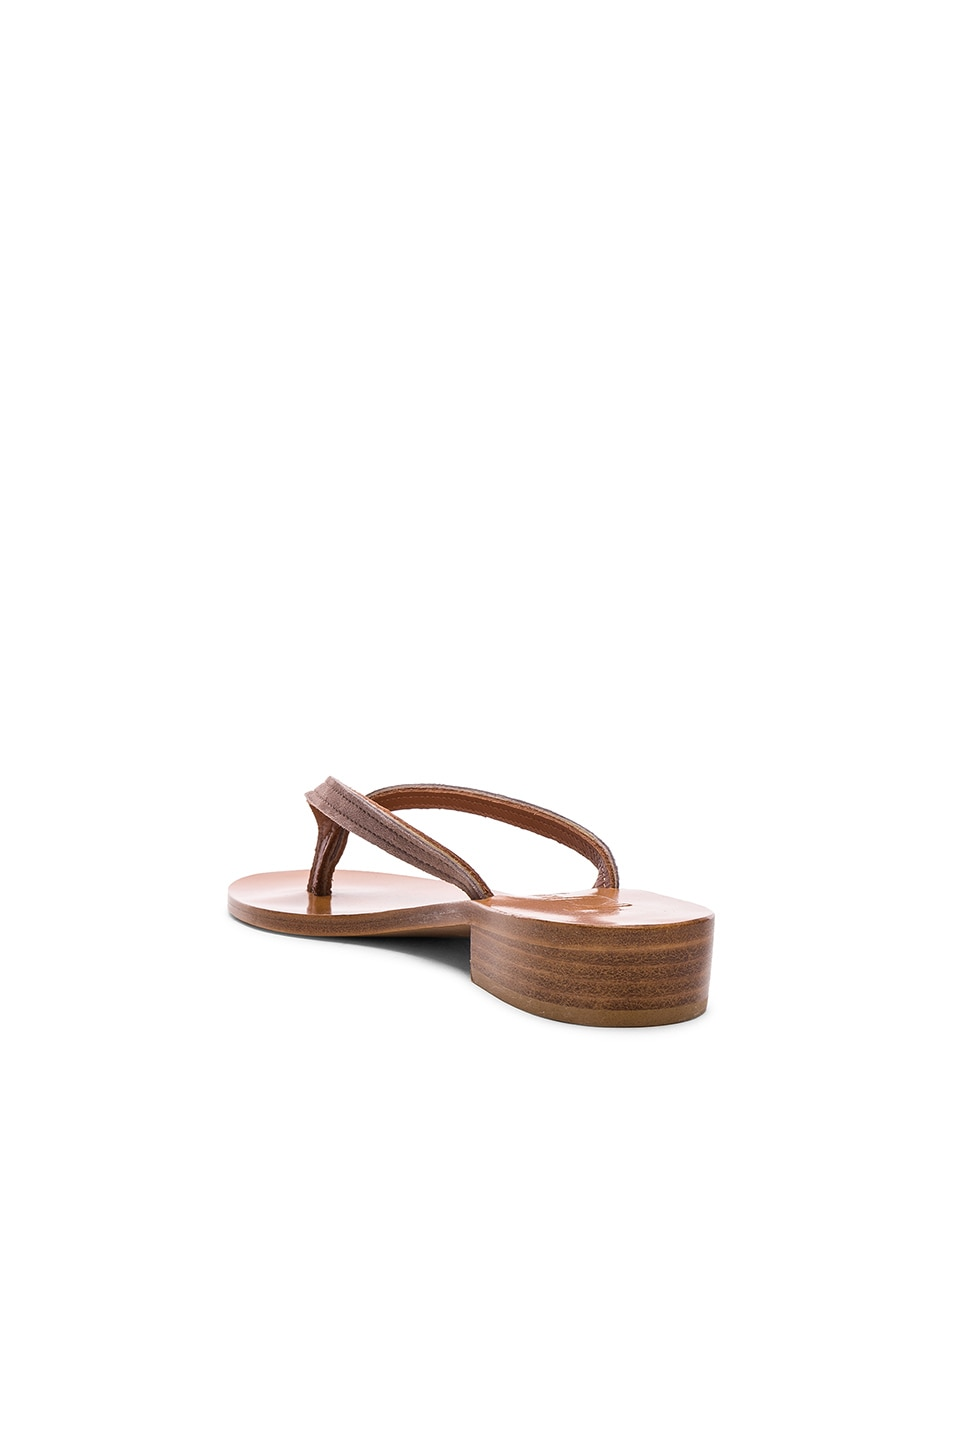 Image 3 of K Jacques Prato Sandals in Velours Amande